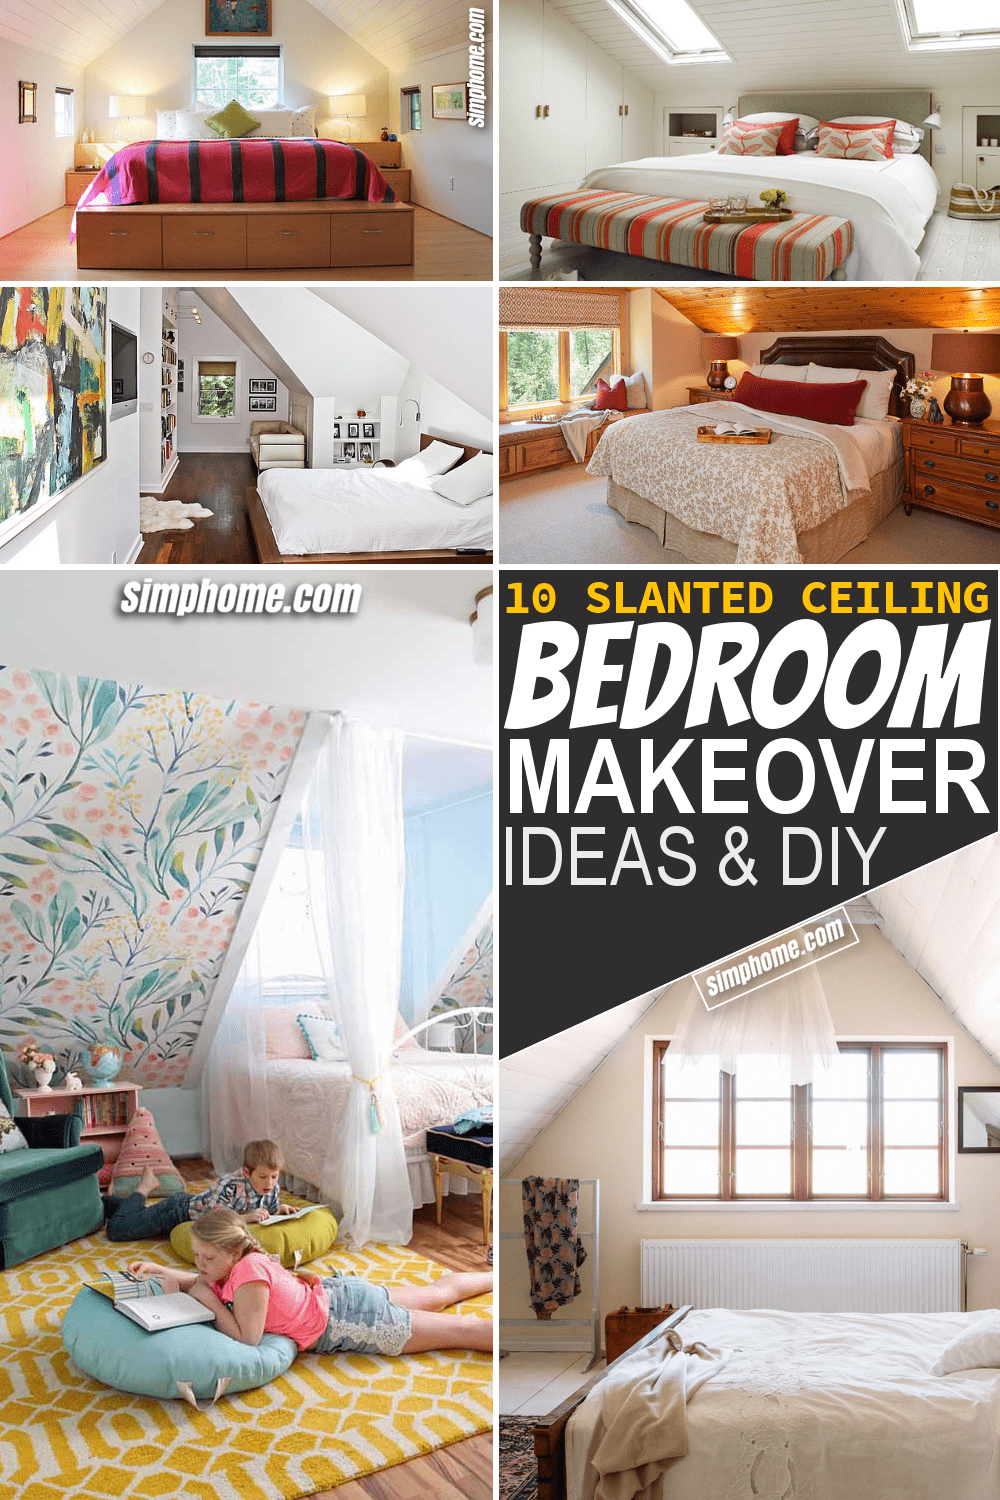 Simphome.com 10 Slanted Ceiling Bedroom Makeover Ideas Featured Pinterest Image